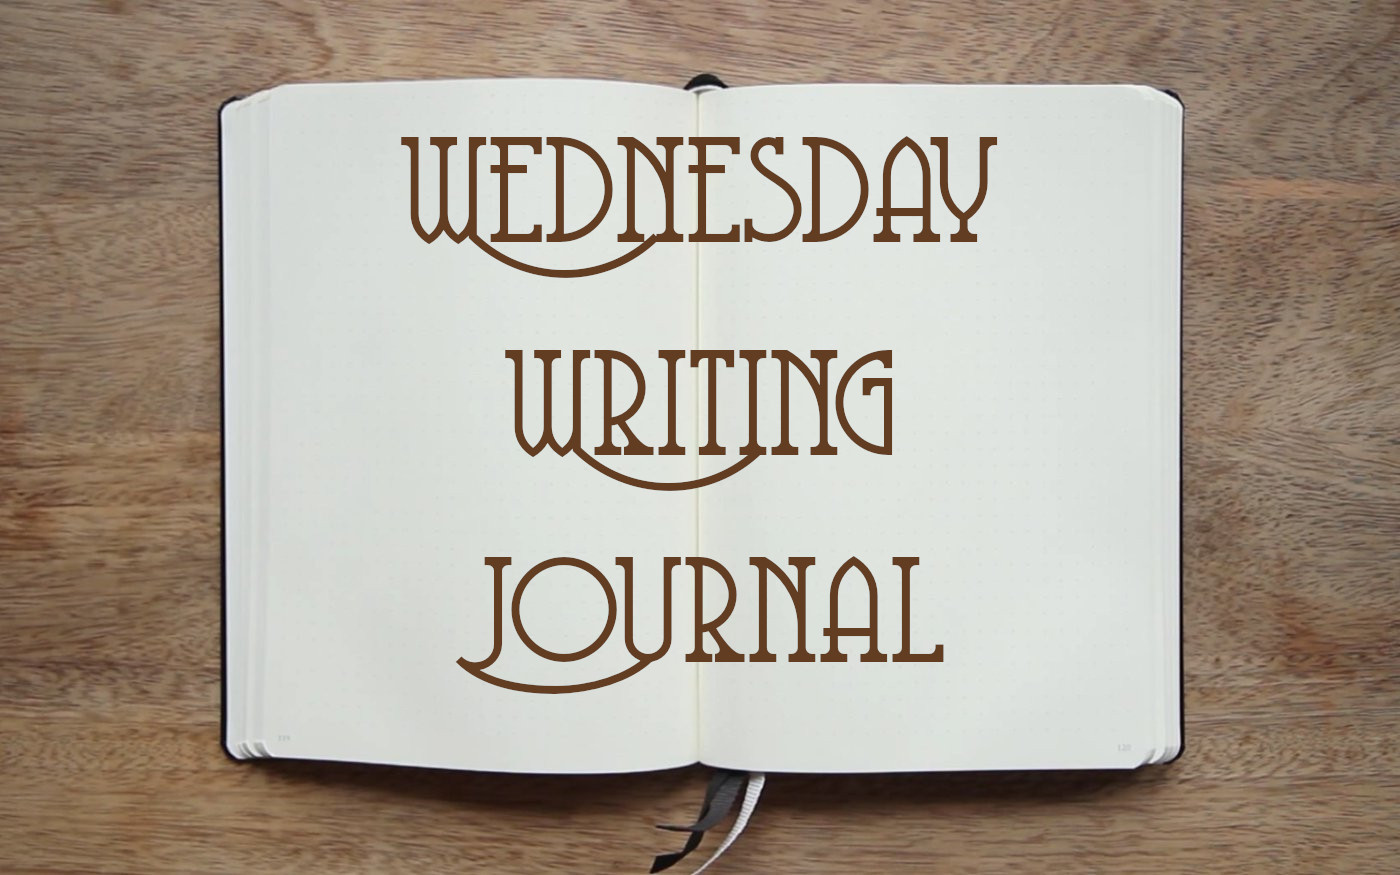 Wednesday Writing Journal: March 4, 2020